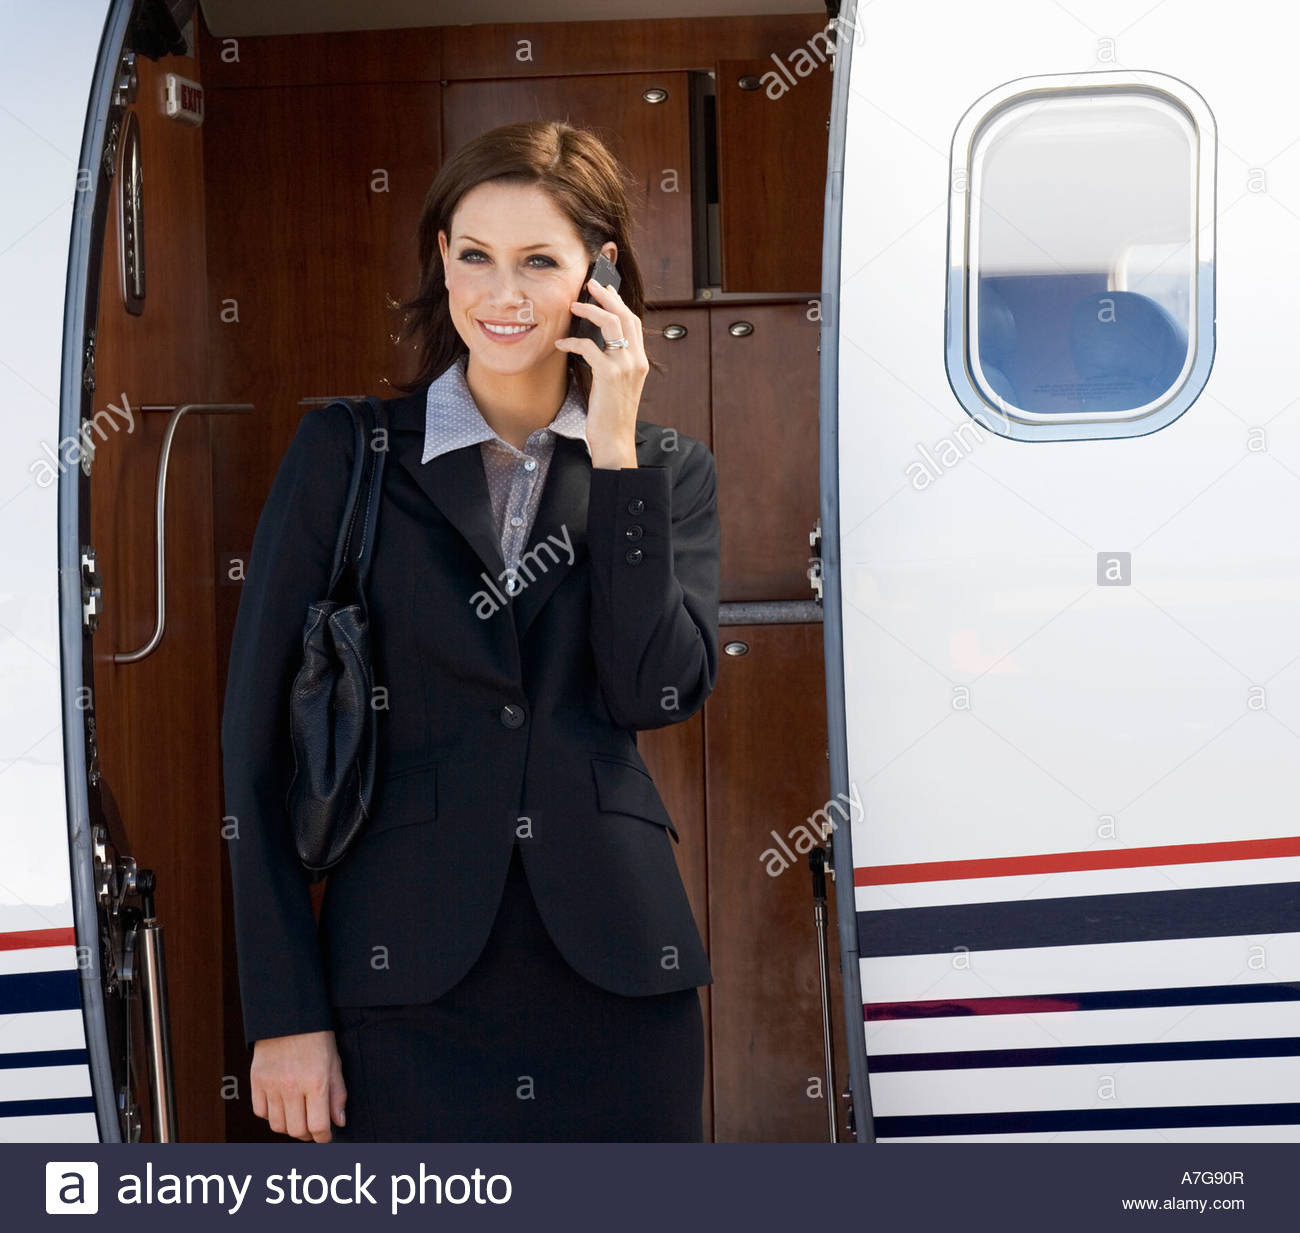 A business woman talking on a mobile phone next to a plane - Stock Image